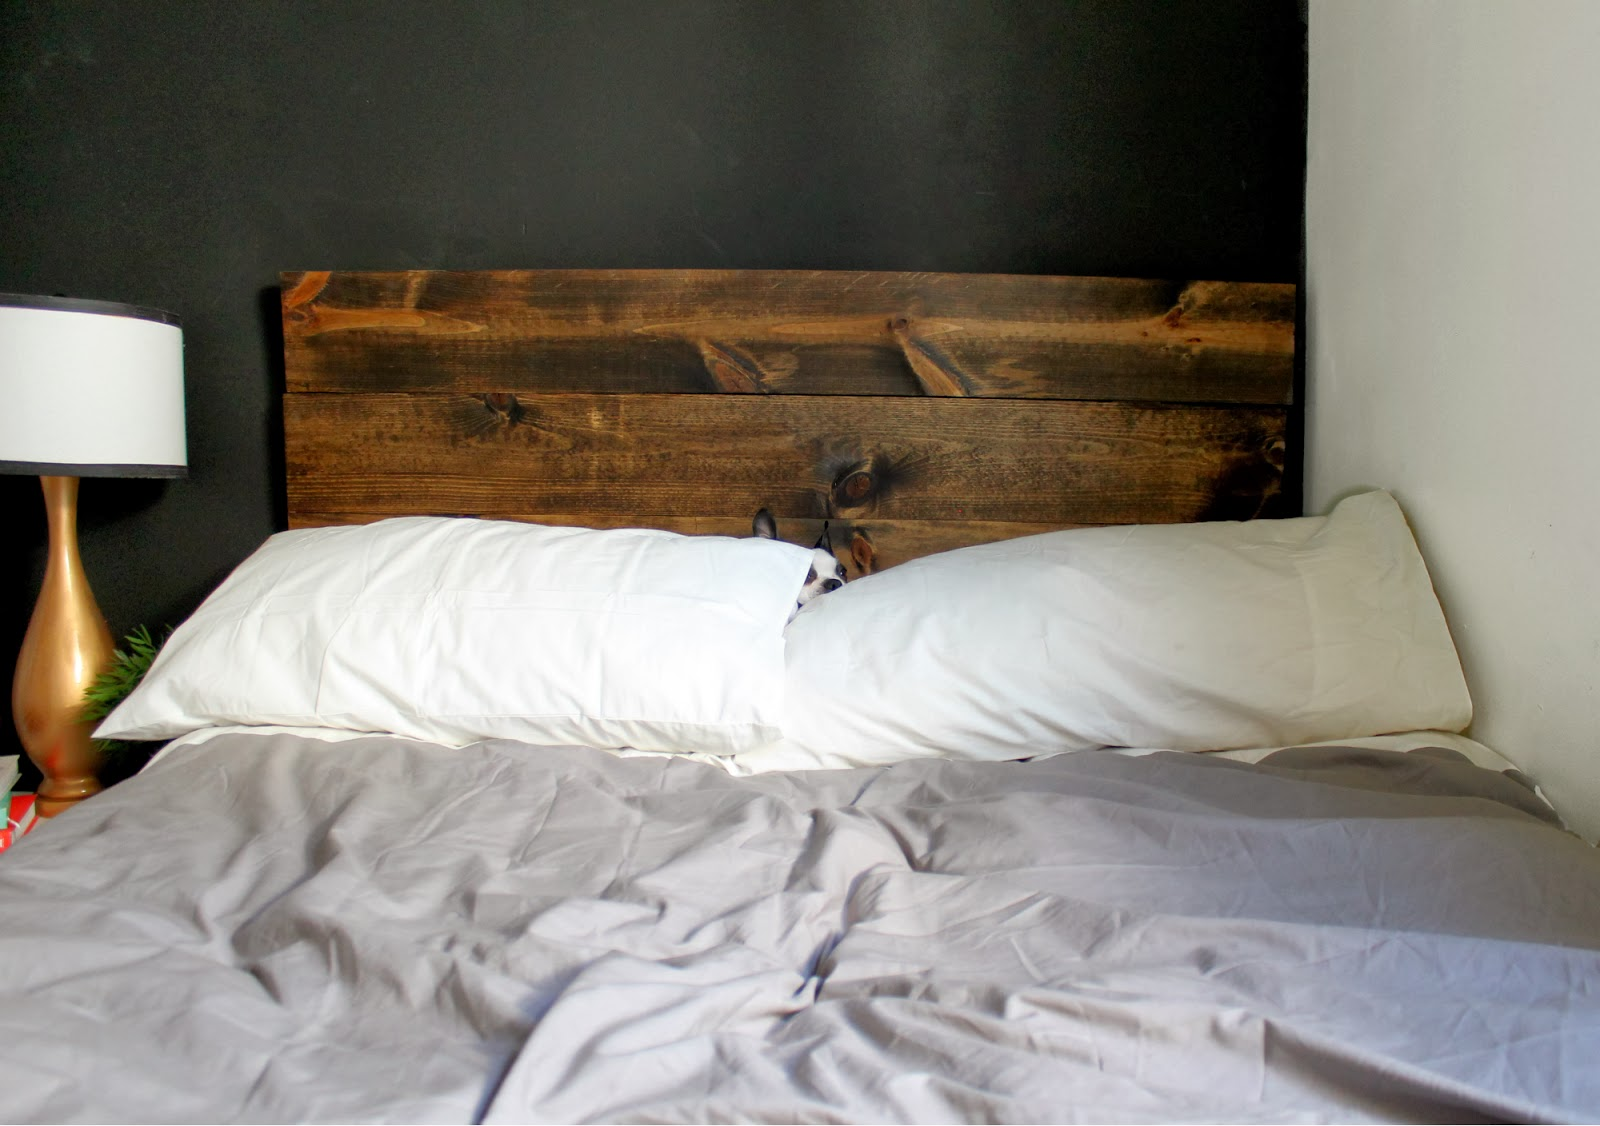 Diy Headboards 20 Diy Headboard Projects The Craftiest Couple